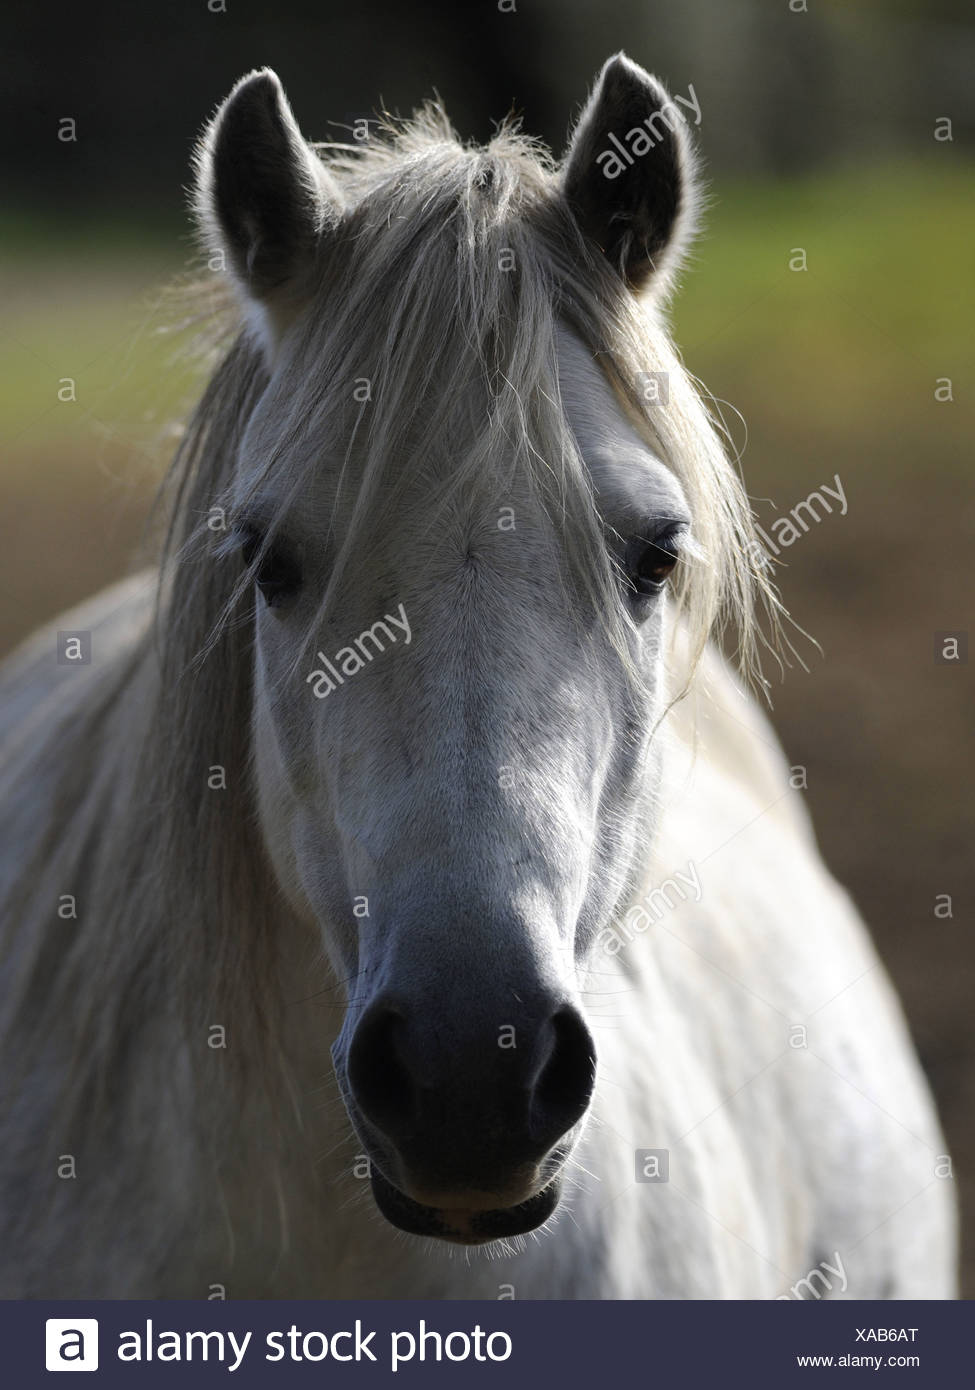 A white welsh wild pony in the Brecon Beacons. - Stock Image